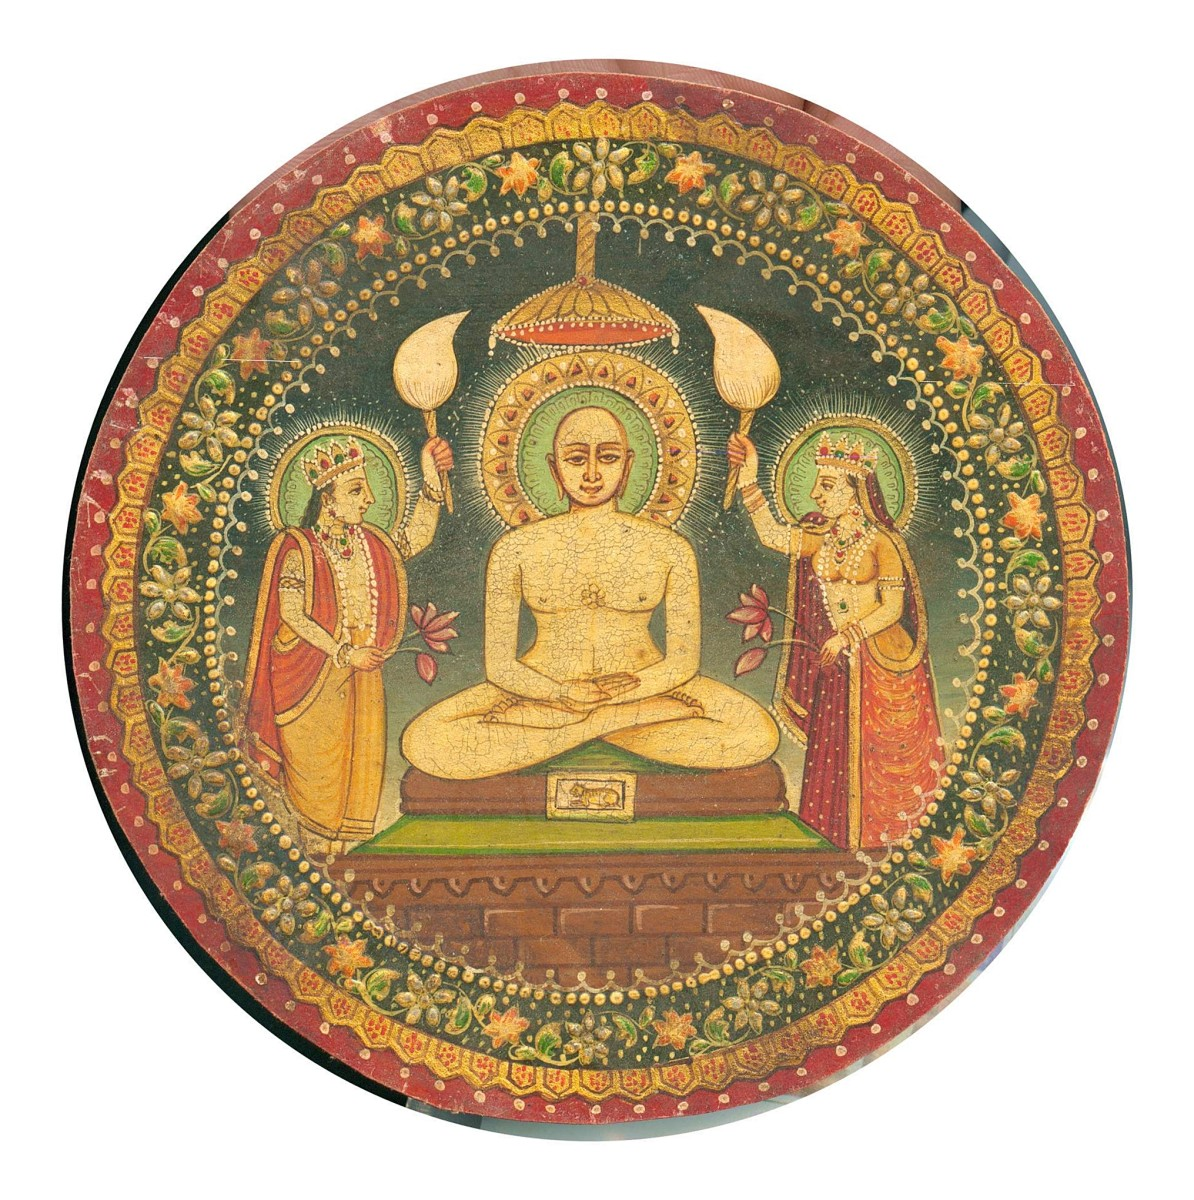 Miniature Painting of Bhagwan Mahaveer